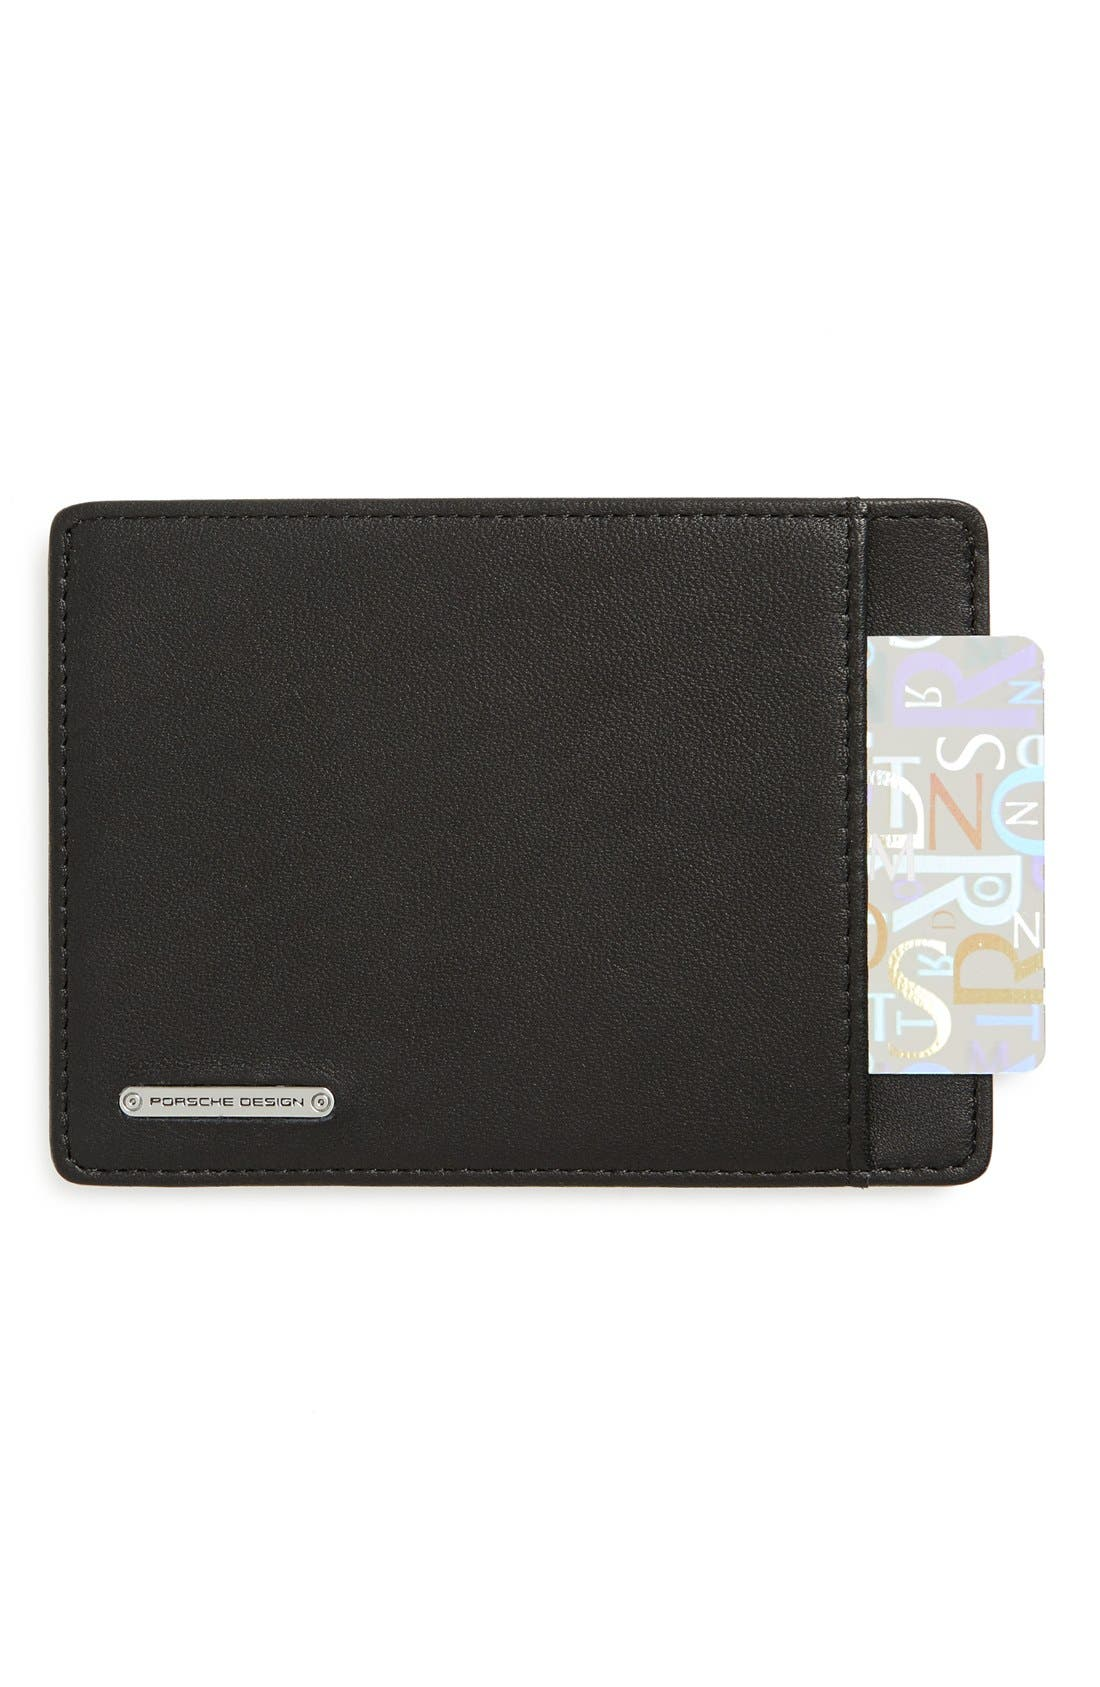 'CL2 2.0' Leather Card Holder,                         Main,                         color, 001